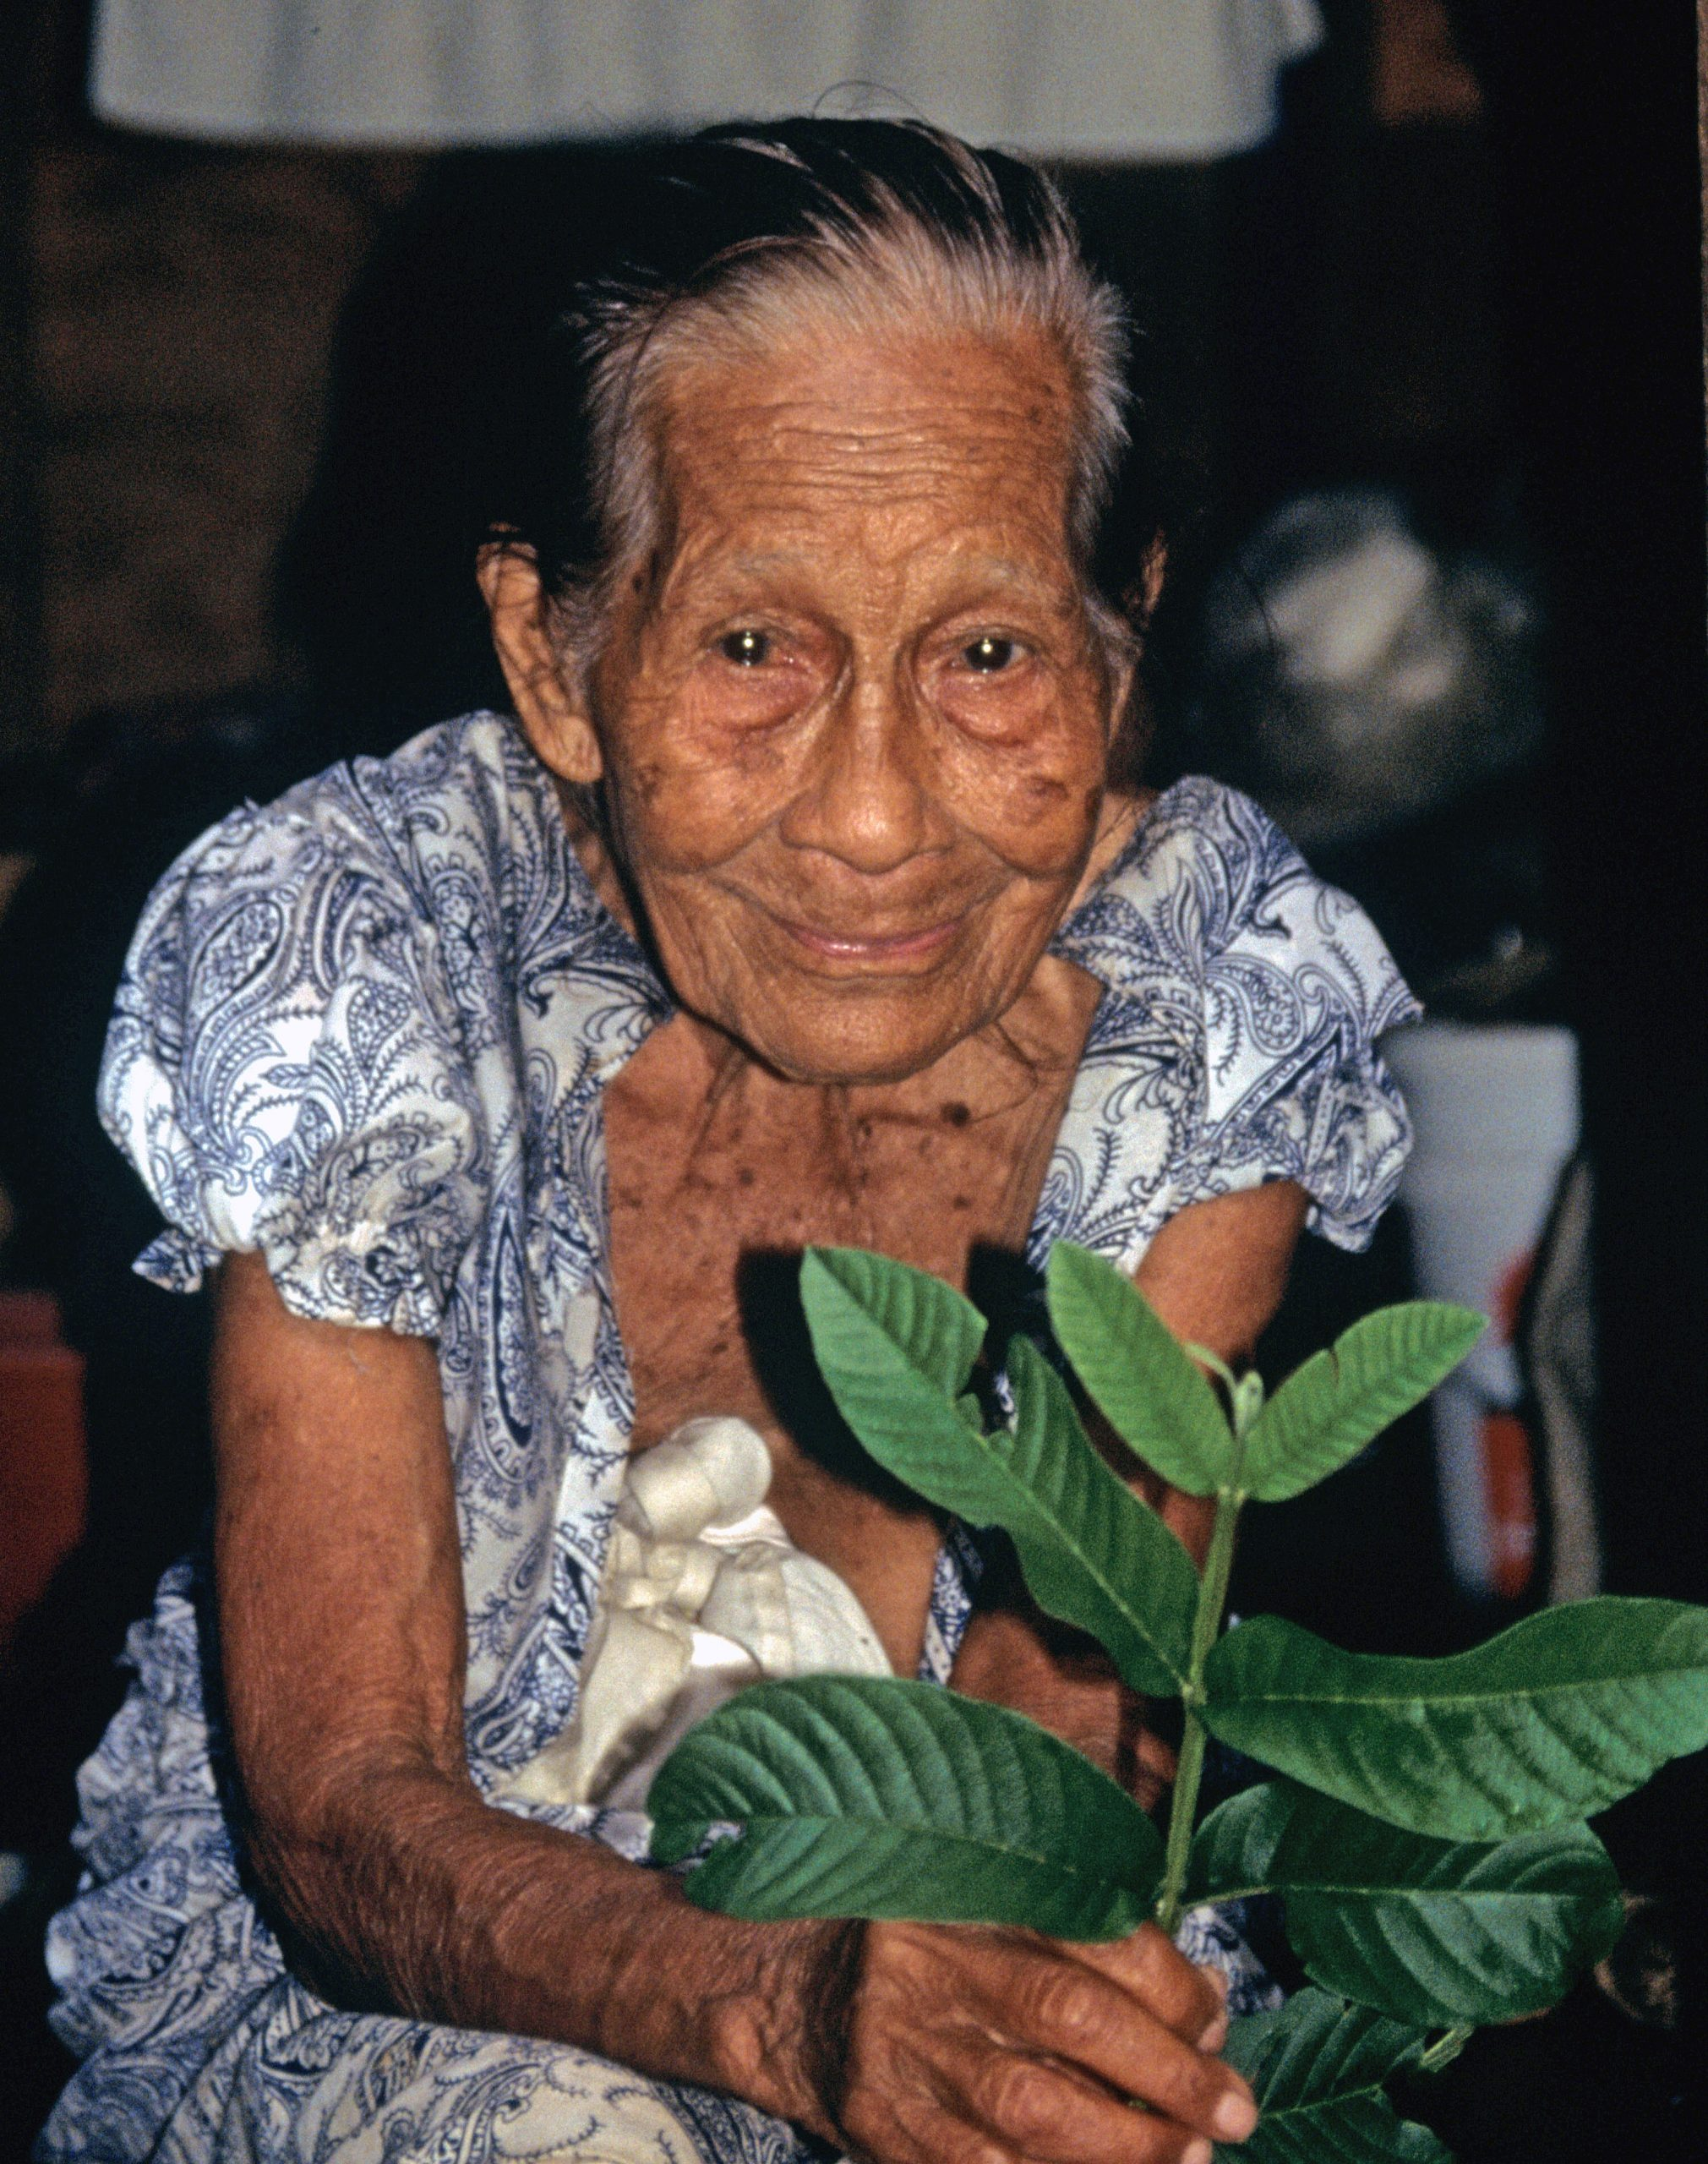 Marie David Healer Pohnpei: Marie David, a healer from Pohnpei, Federated States of Micronesia, holding a stem of the guava plant, Psidium guajava, widely known to treat diarrhea. The young leaves and stems can be chewed directly, or shavings of the bark made into a healing tea.